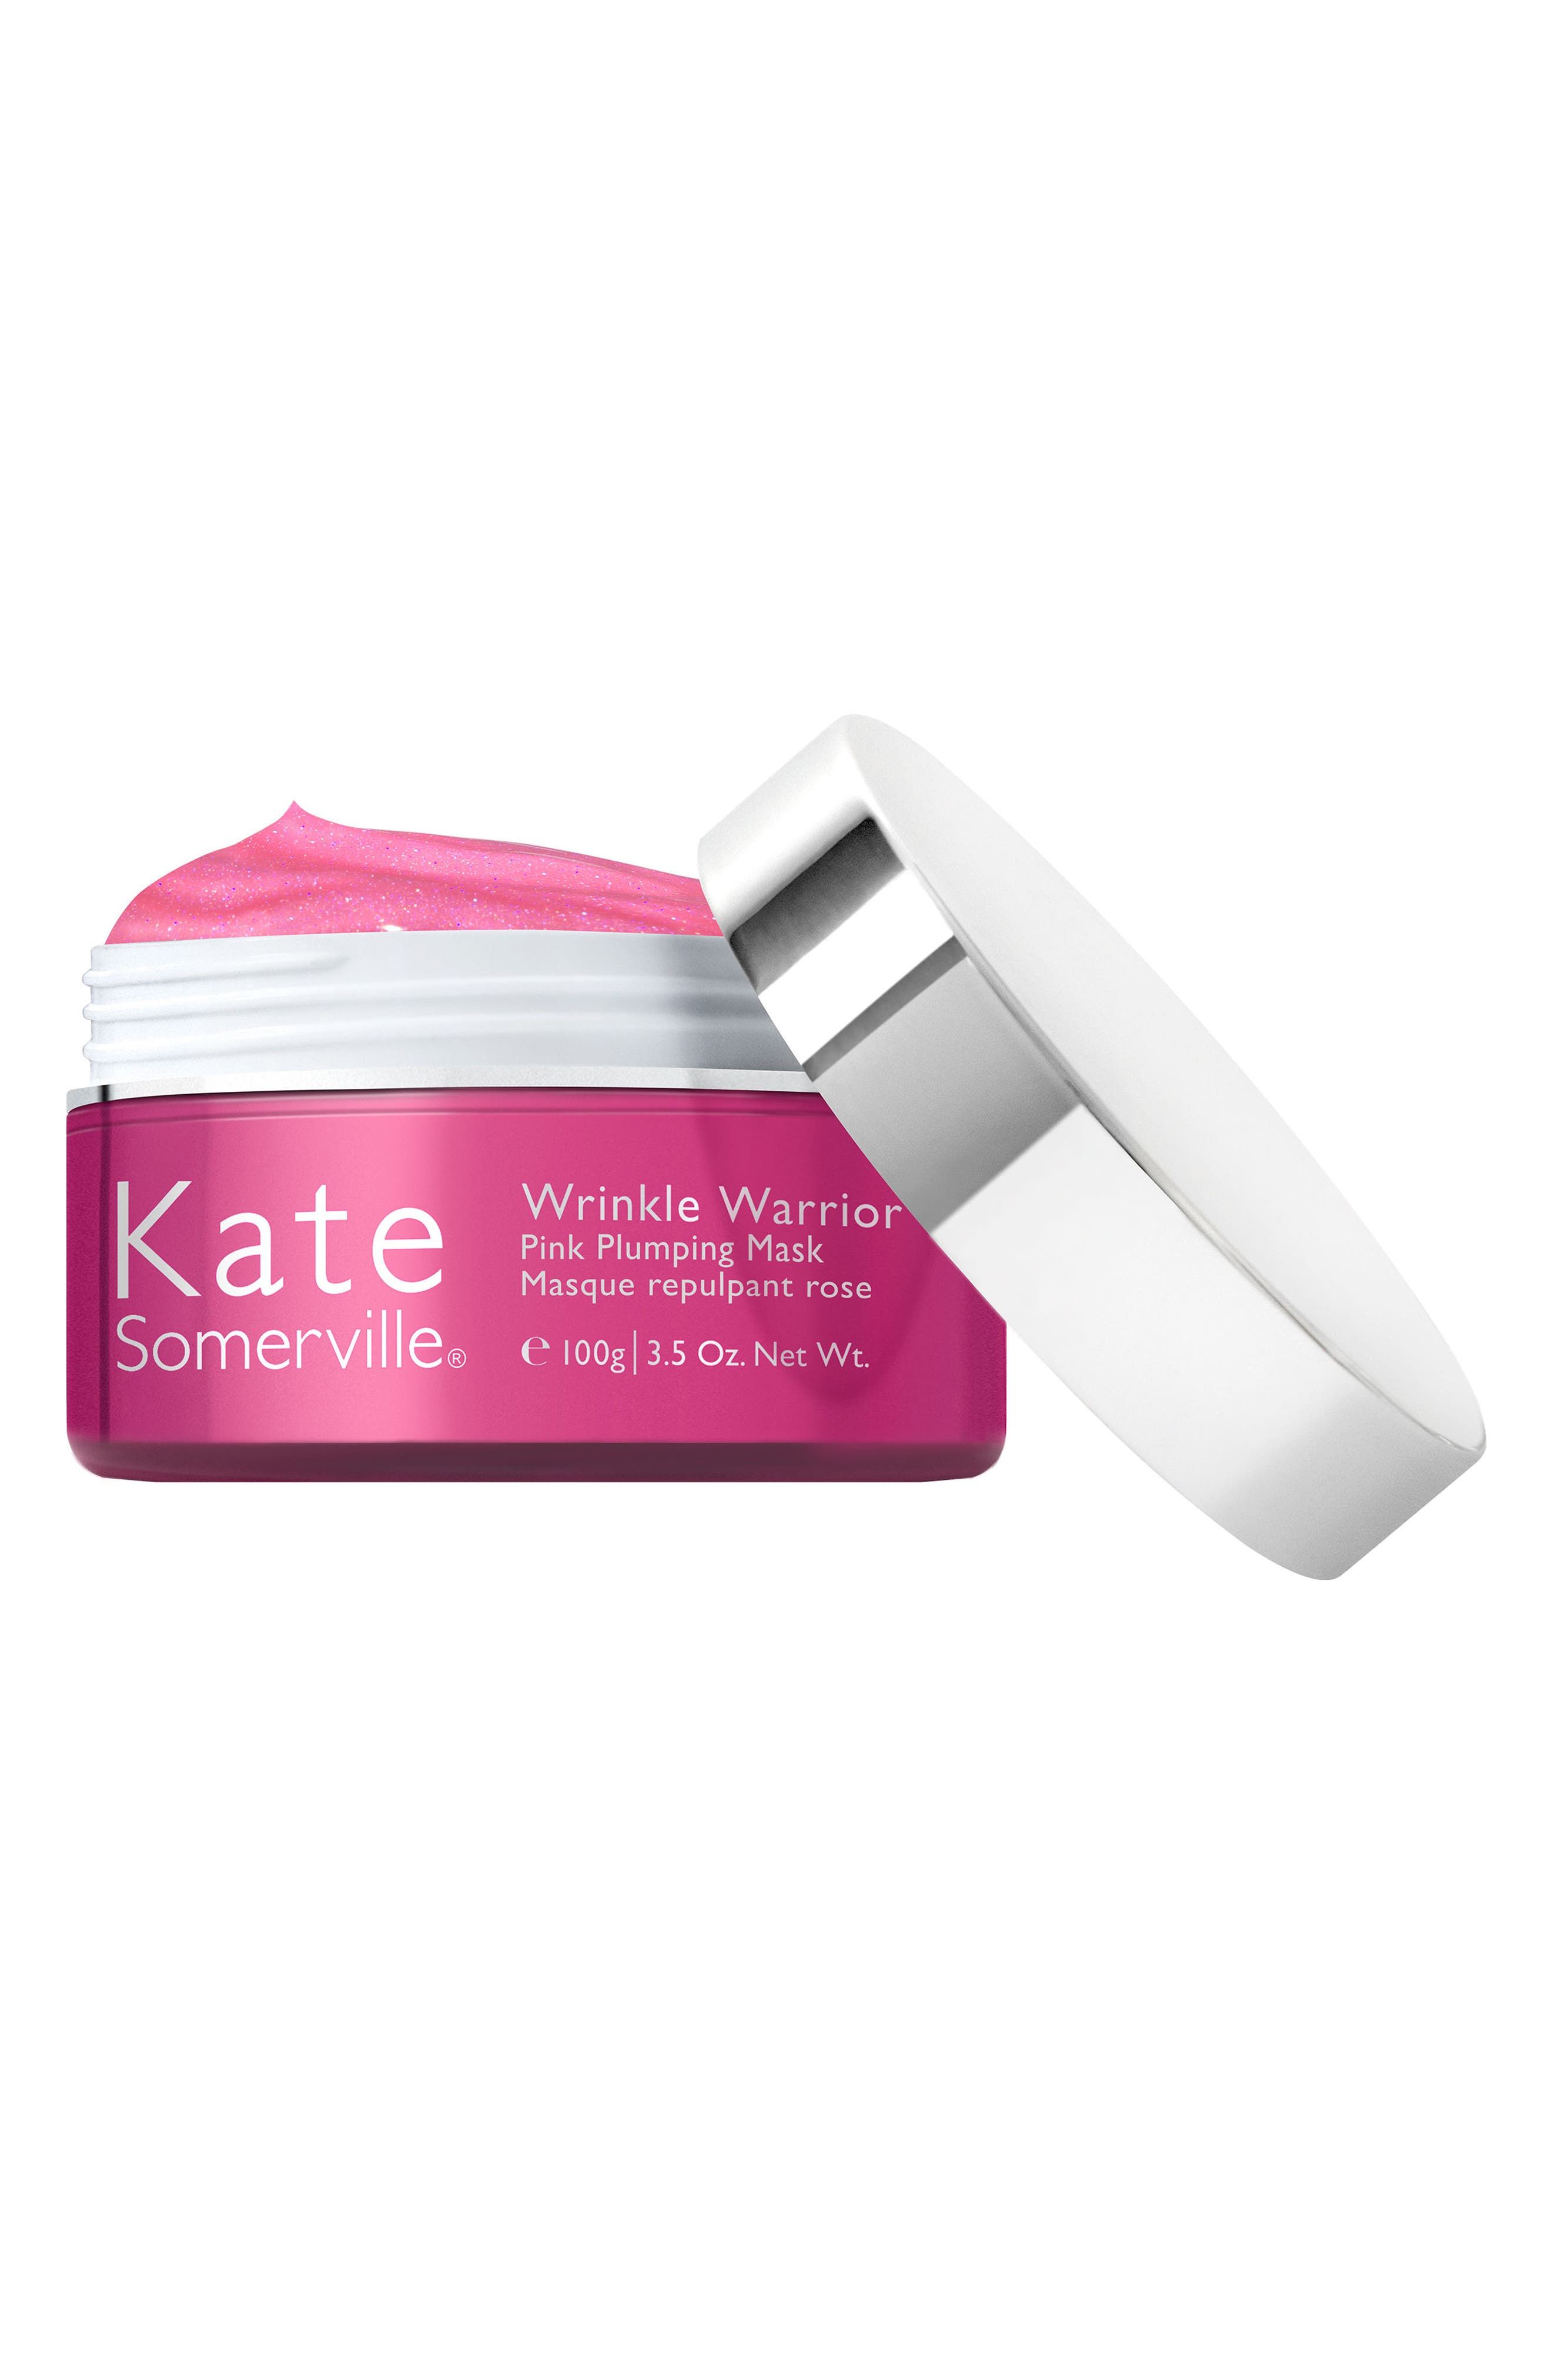 Wrinkle Warrior Plumping Mask,                             Alternate thumbnail 3, color,                             No Color